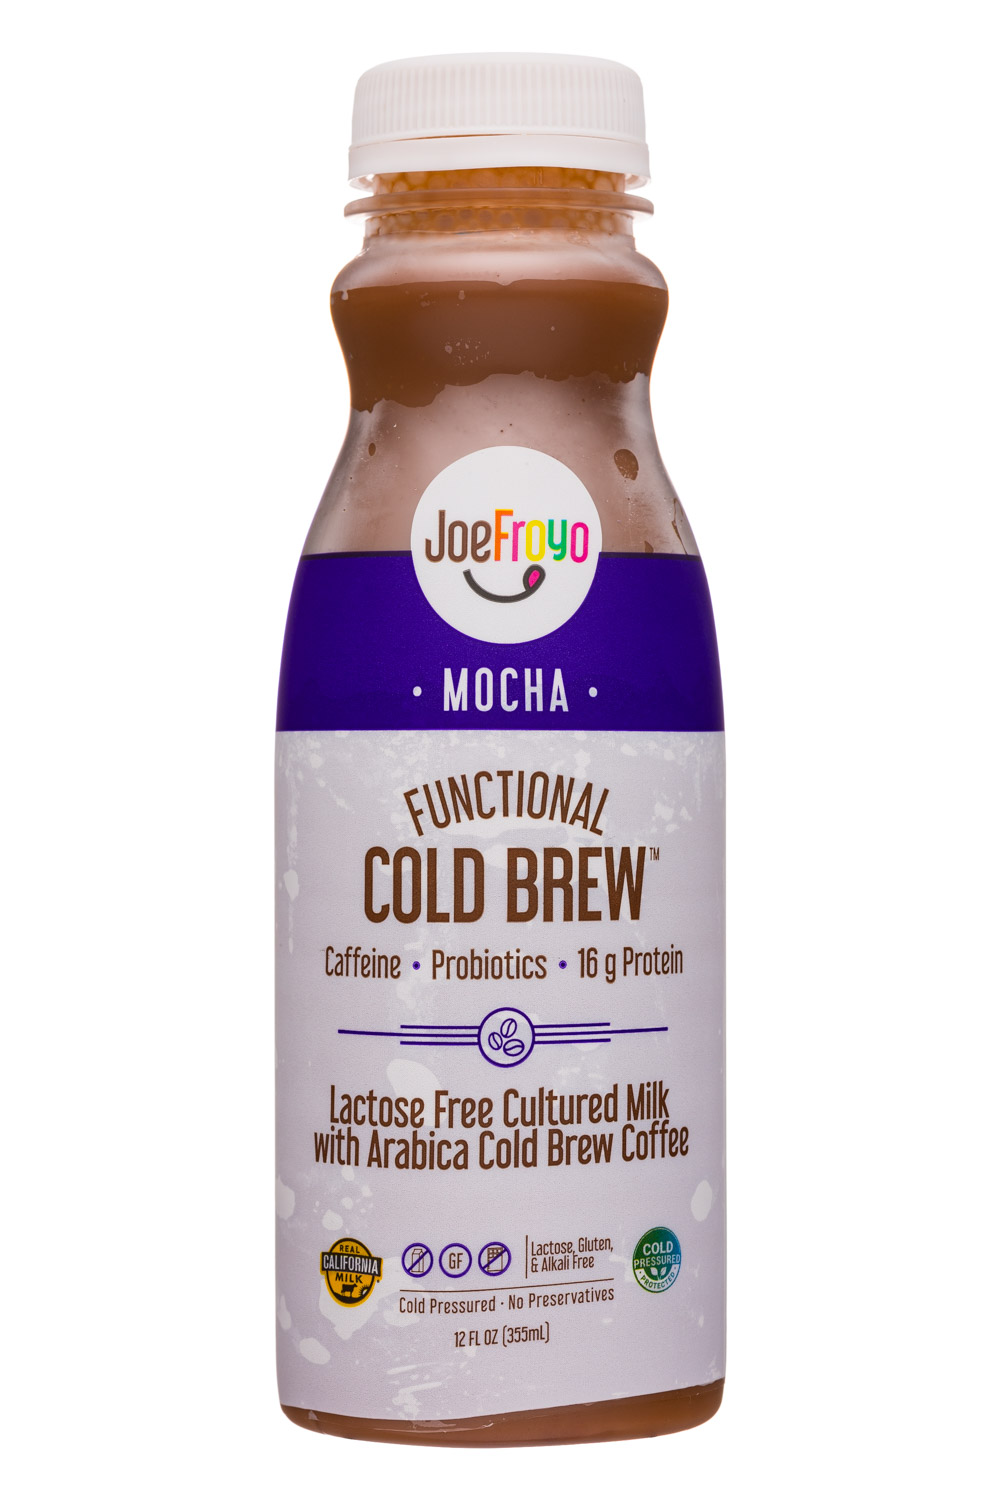 Functional Cold Brew - Mocha